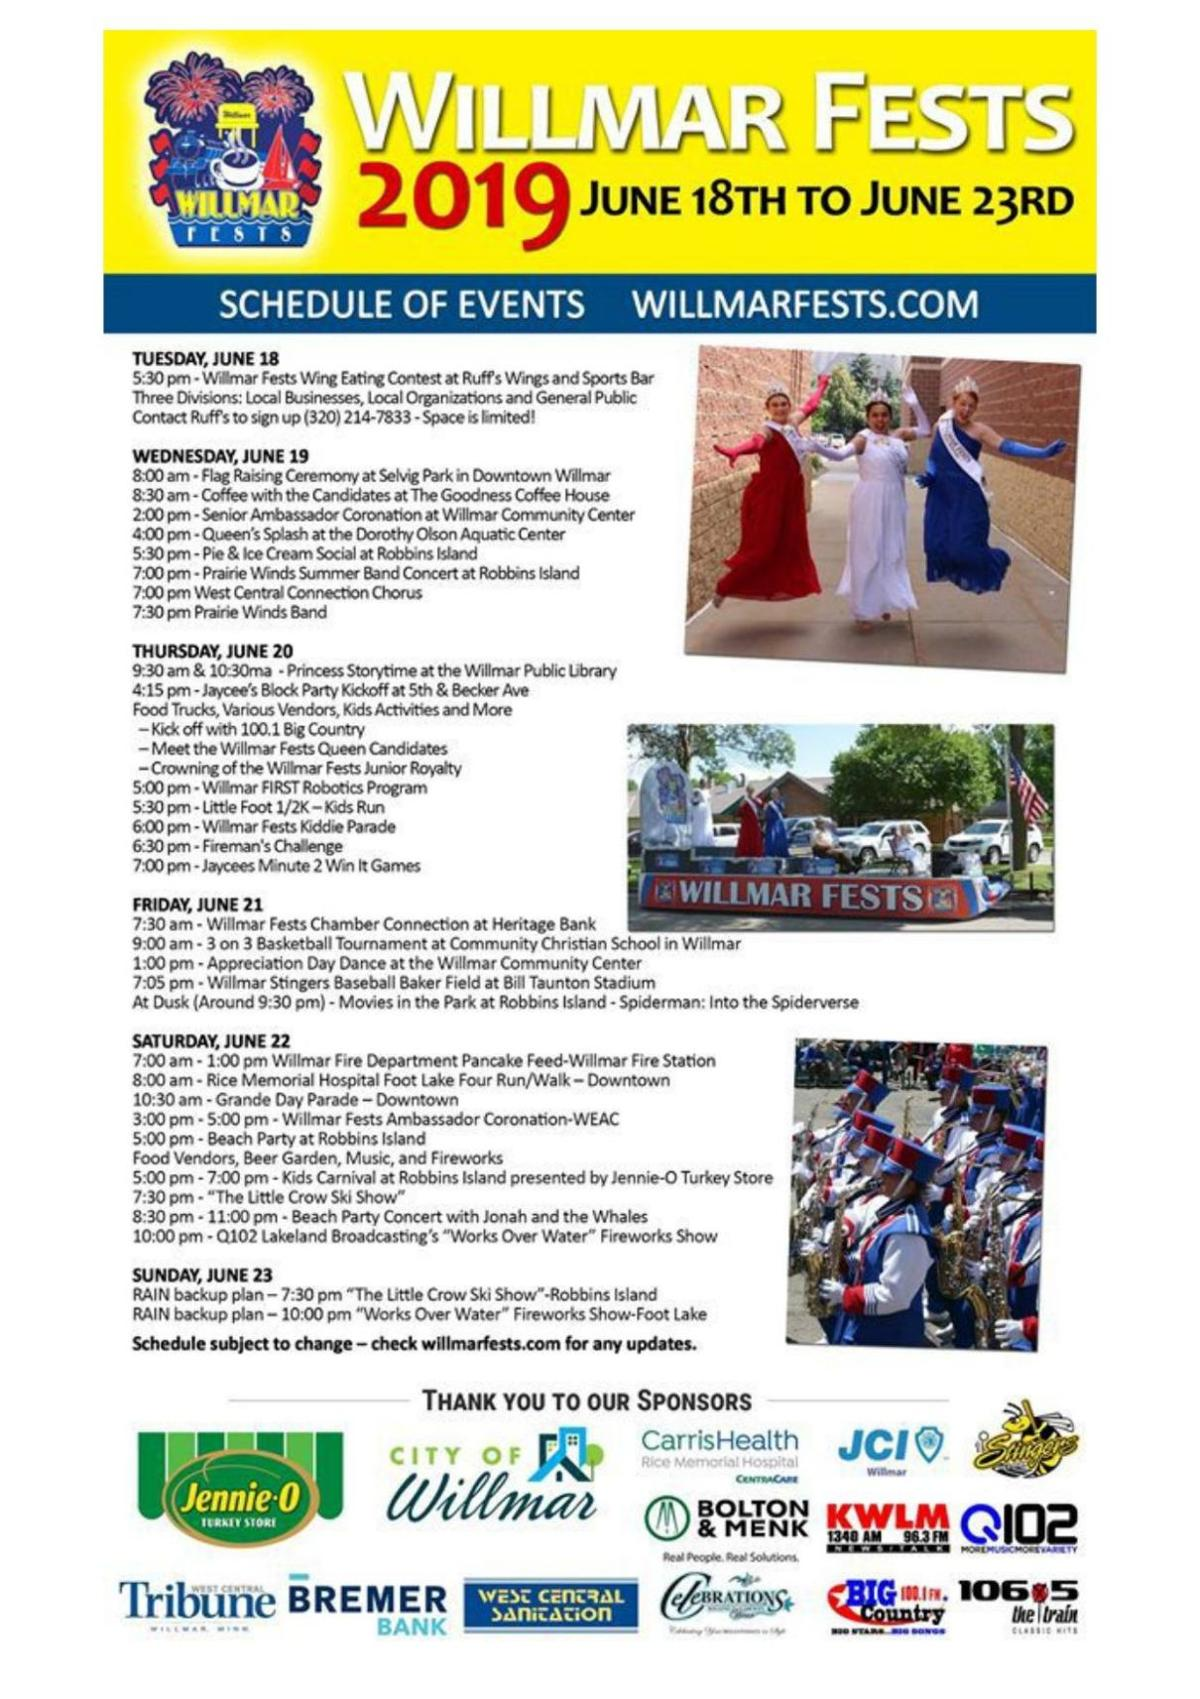 Willmar Fests 2019 Schedule